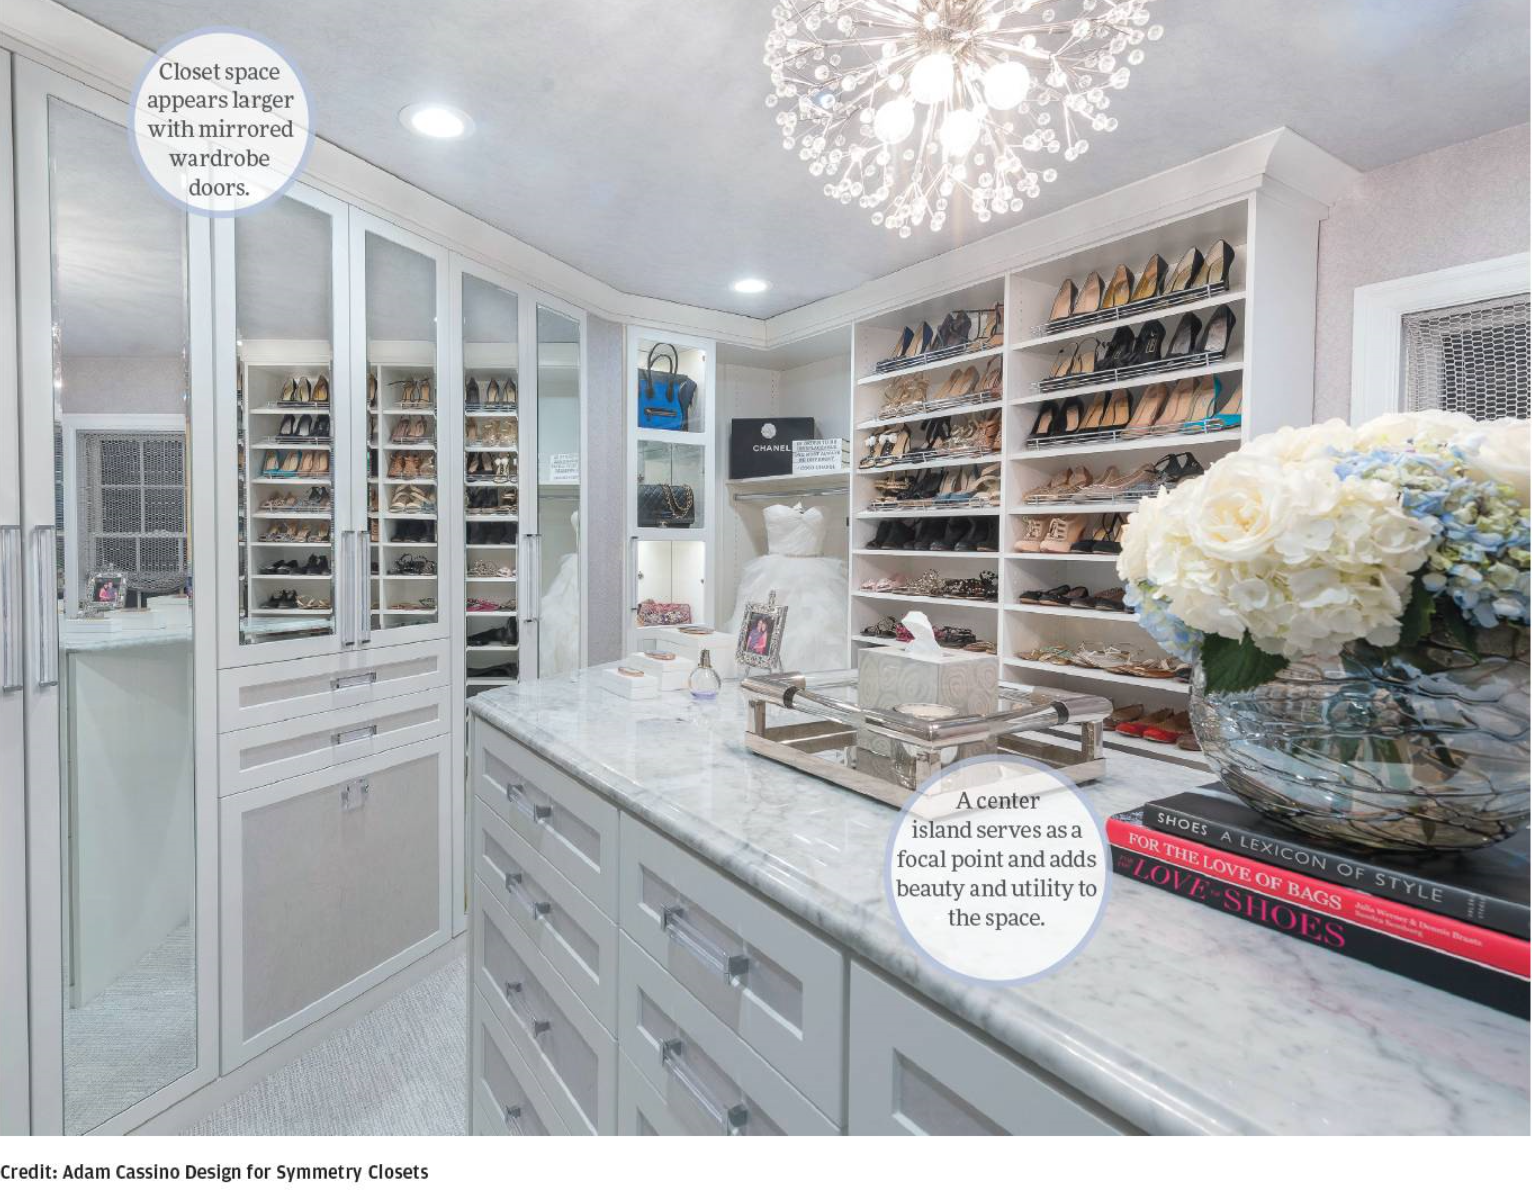 Symmetry talks about Closet Essentials in this month's Long Island Press